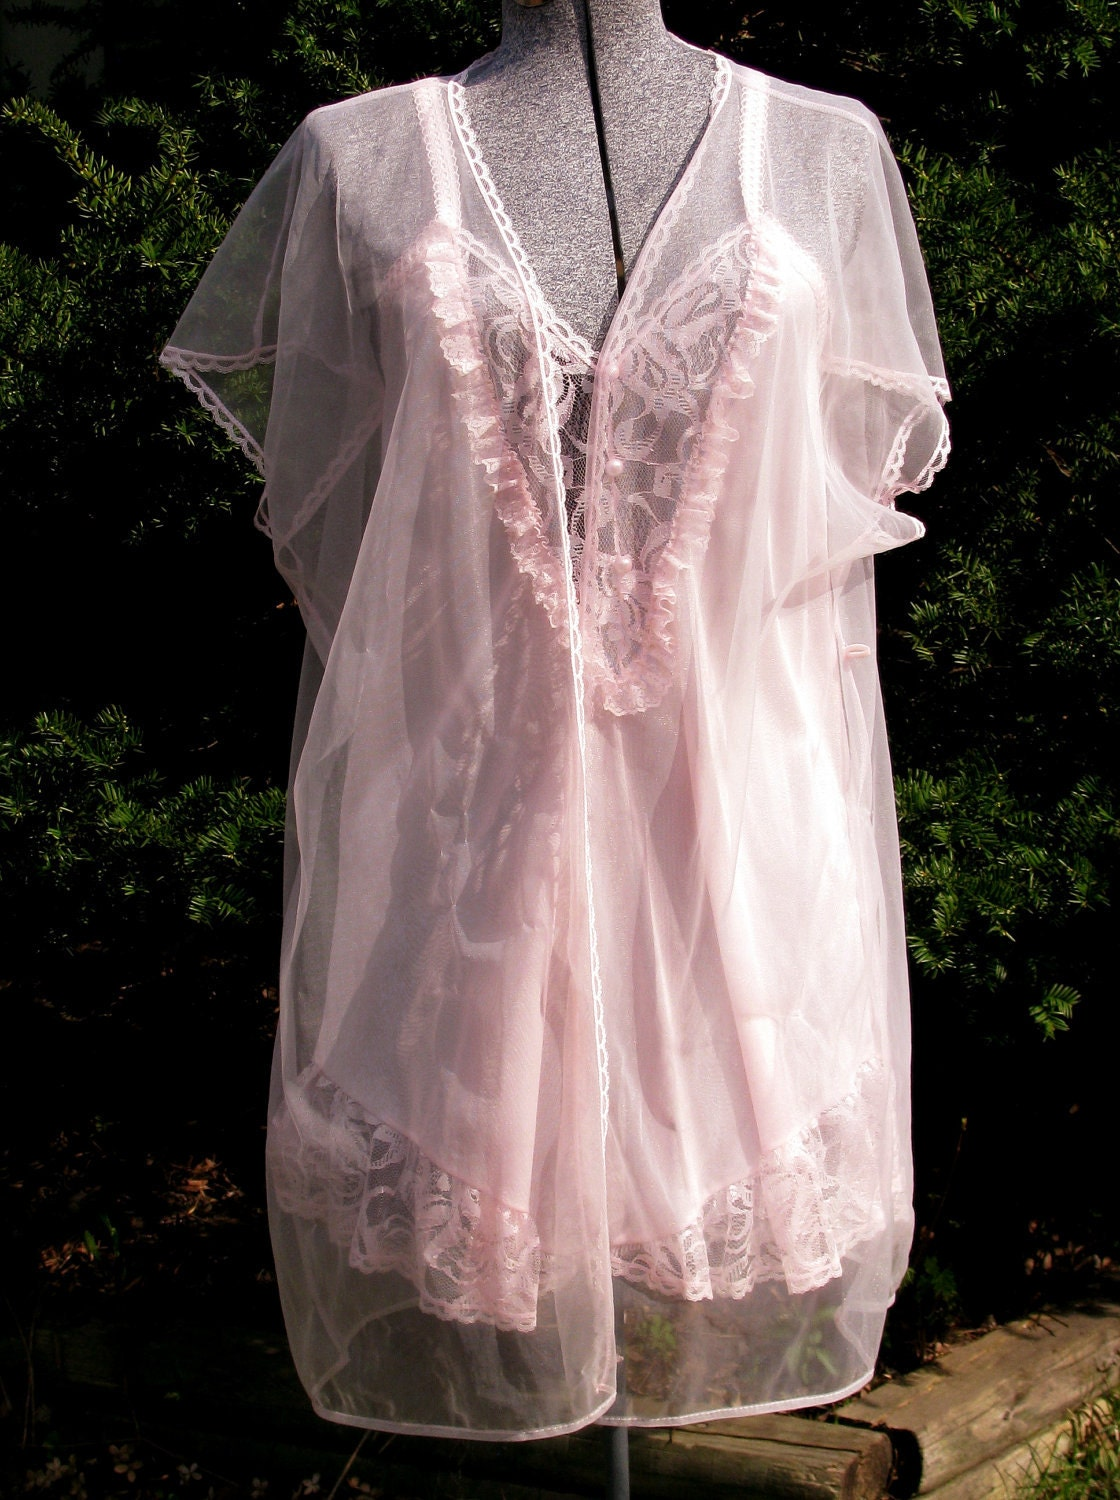 Vintage Peignoir Baby Doll Nightie And Robe Pink Short Set